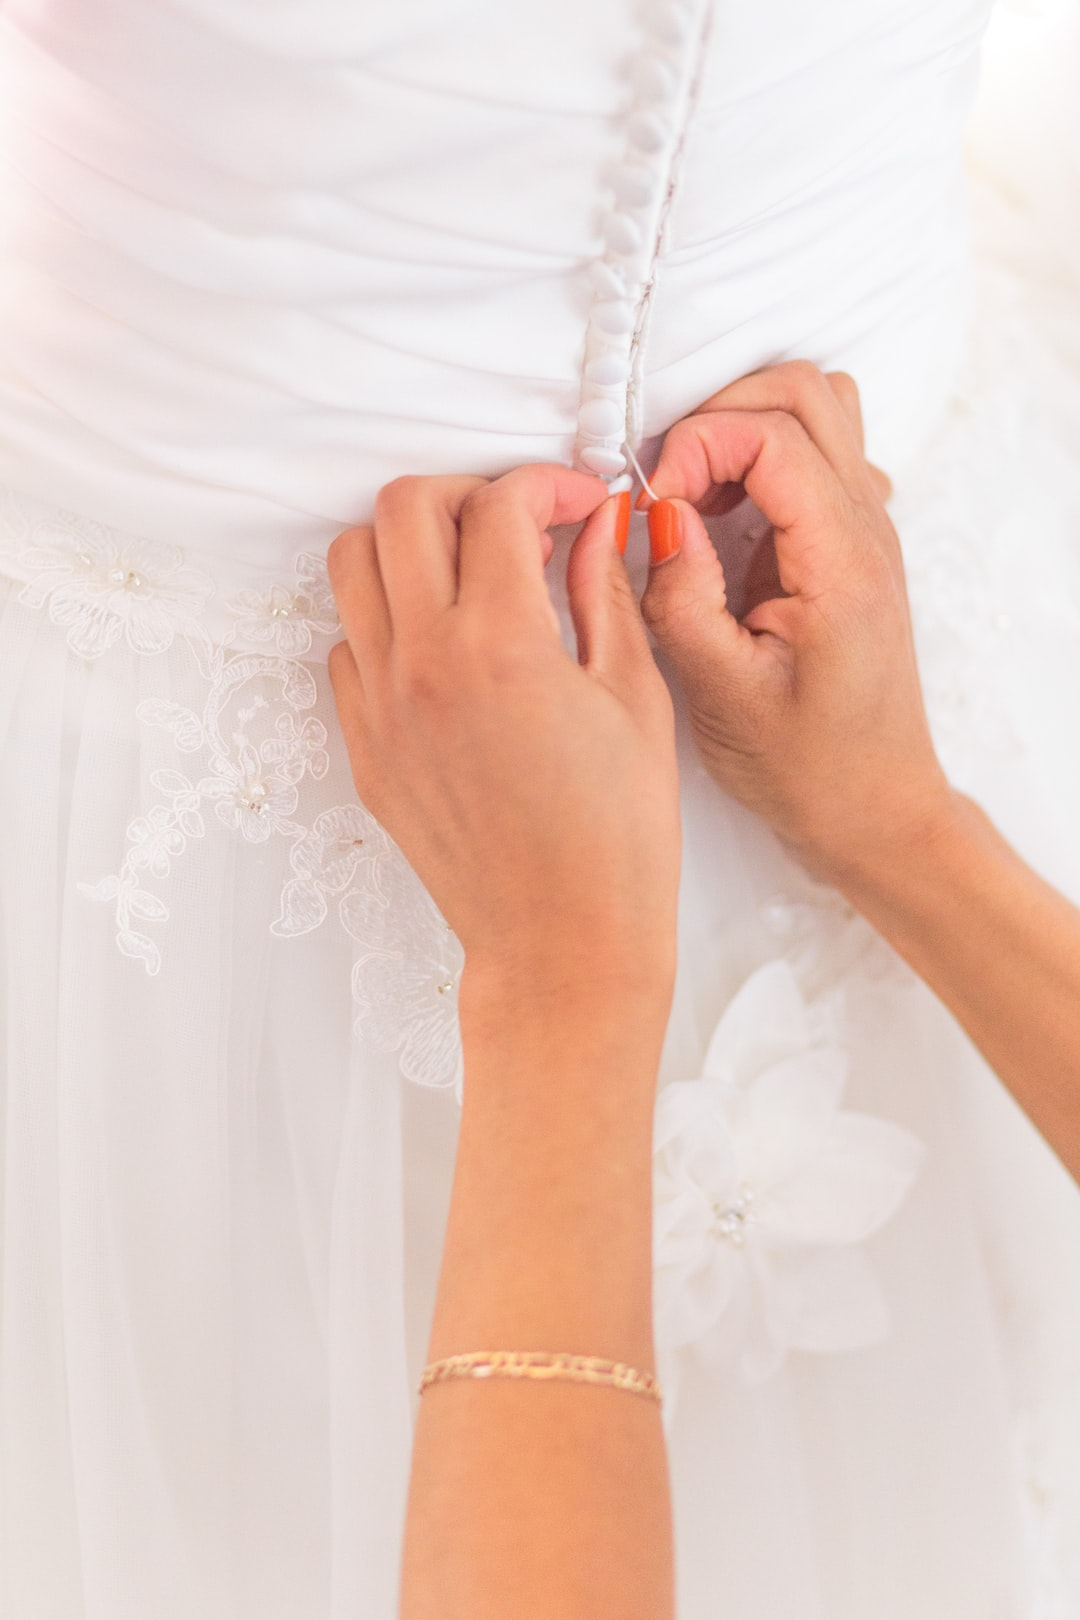 Bride gets the finishing touches